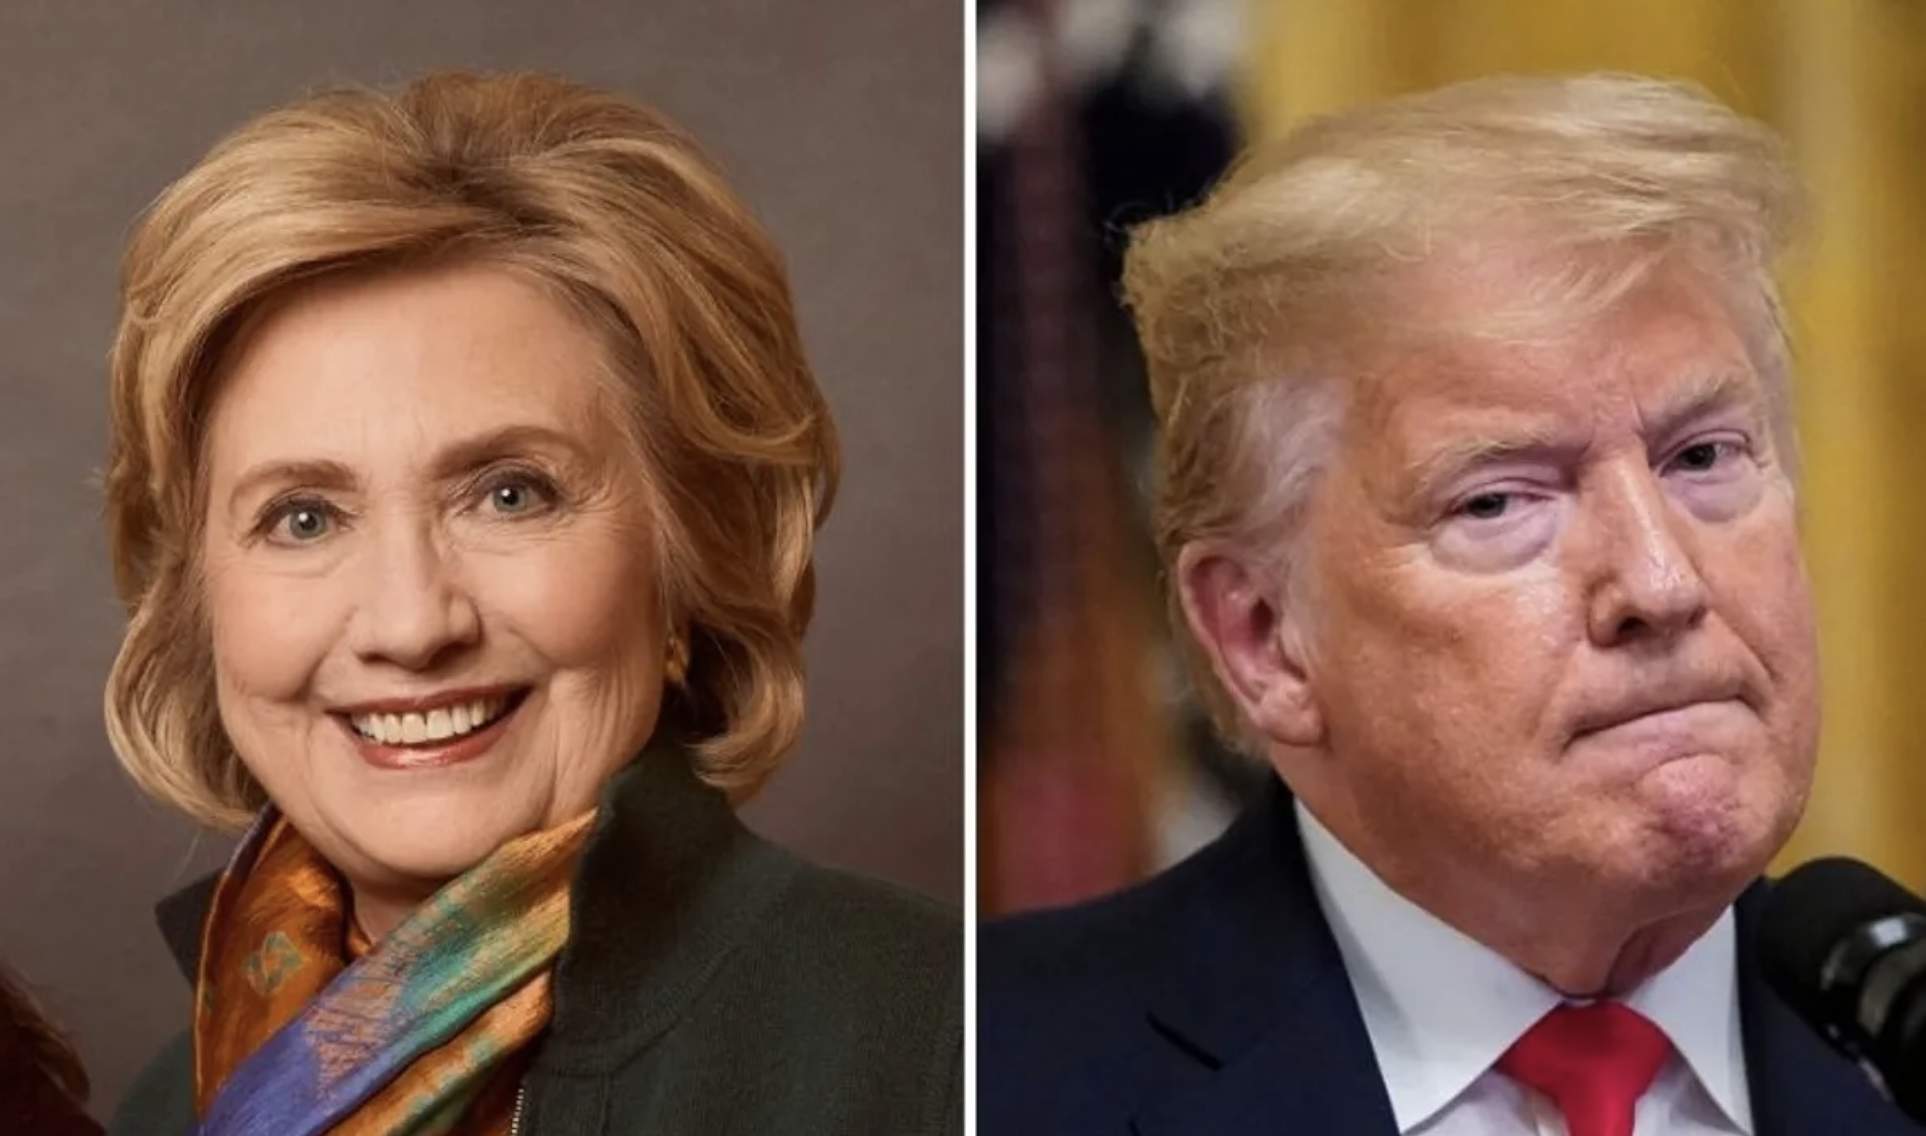 Hillary Just Perfectly Trolled Trump After He Tried to Go After Her in Rambling Response About Kamala Harris